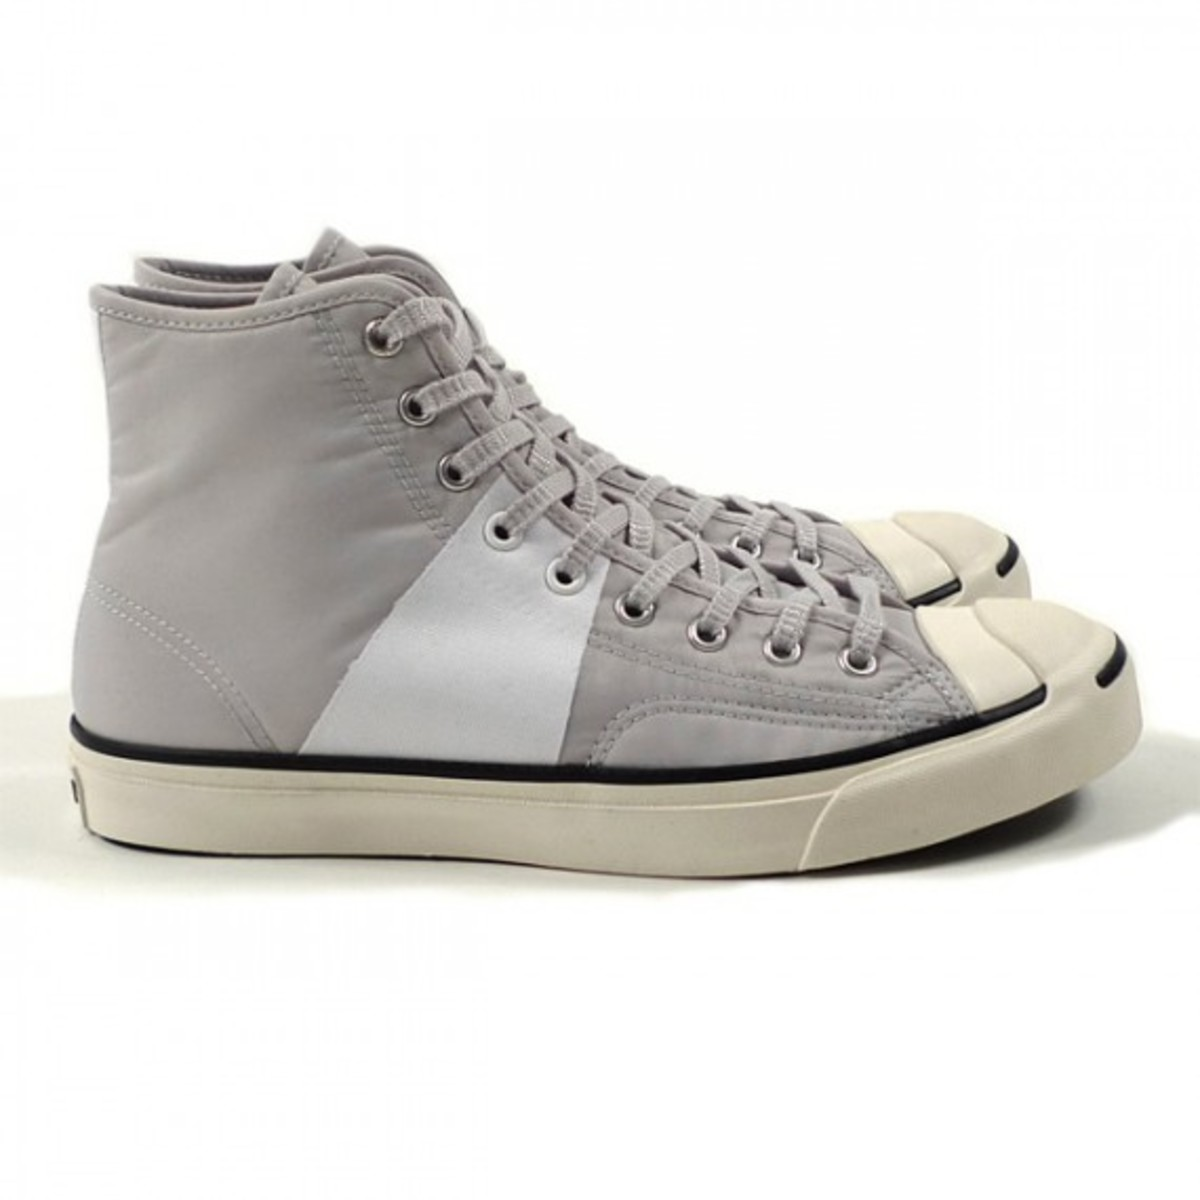 converse-first-string-jack-purcell-johnny-02